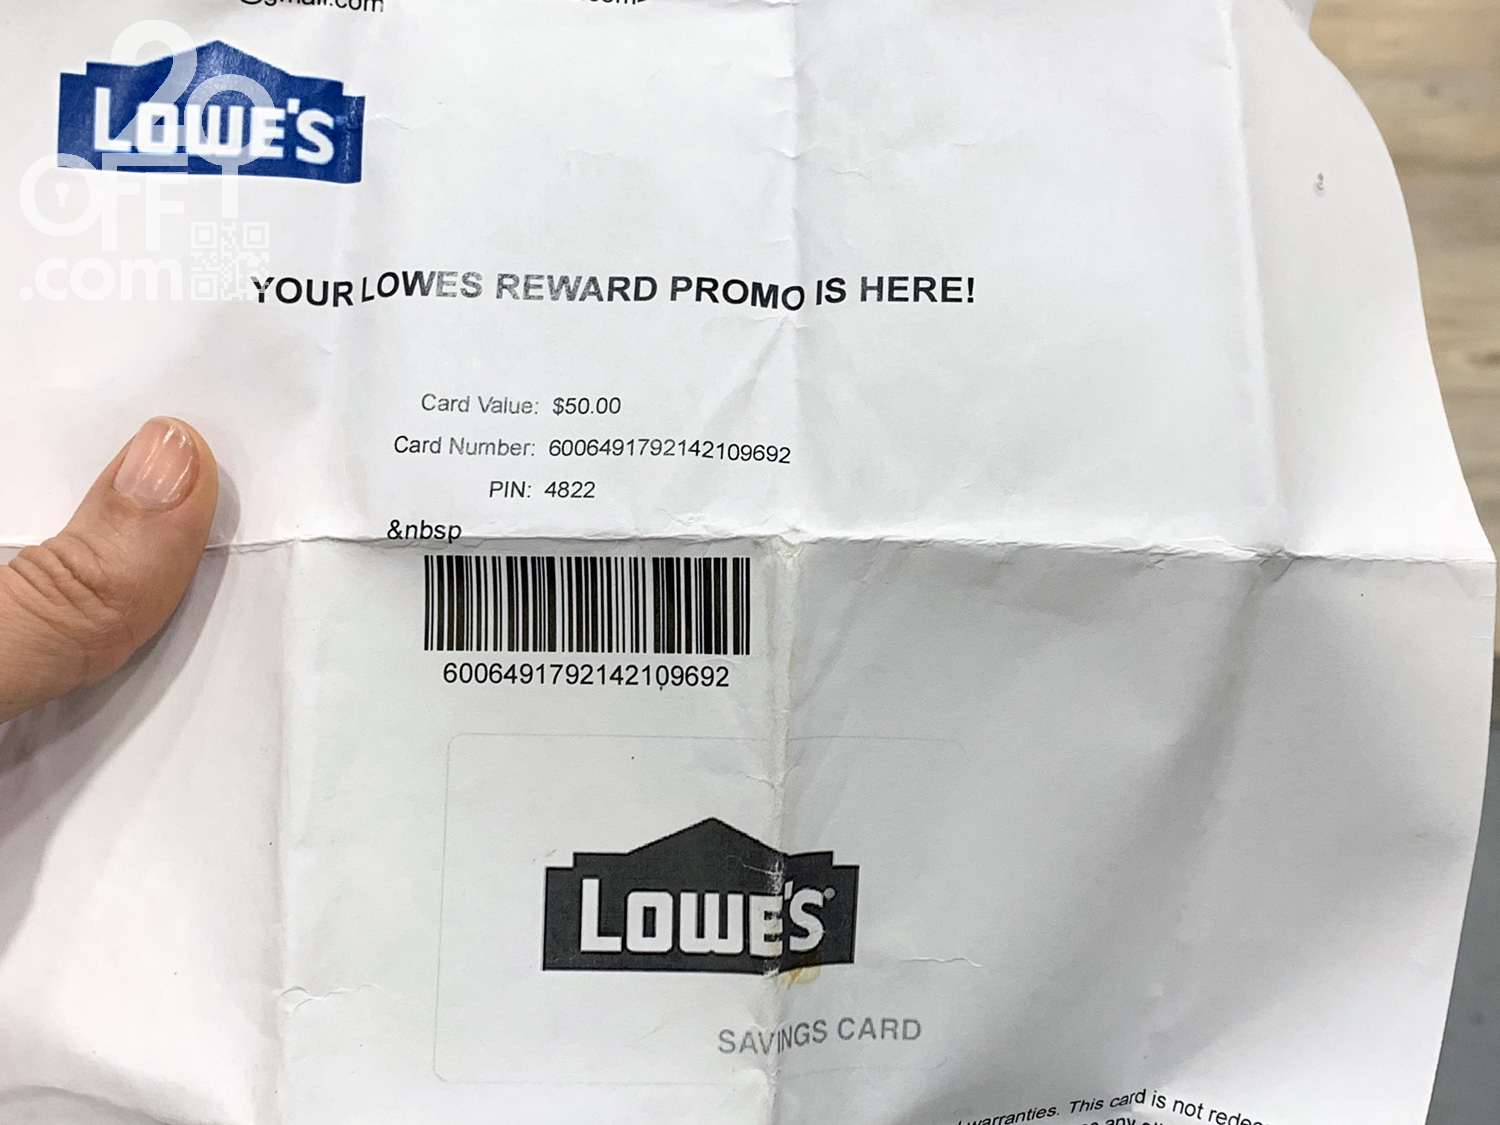 This is an image of Current Lowes Coupon Printable 2020